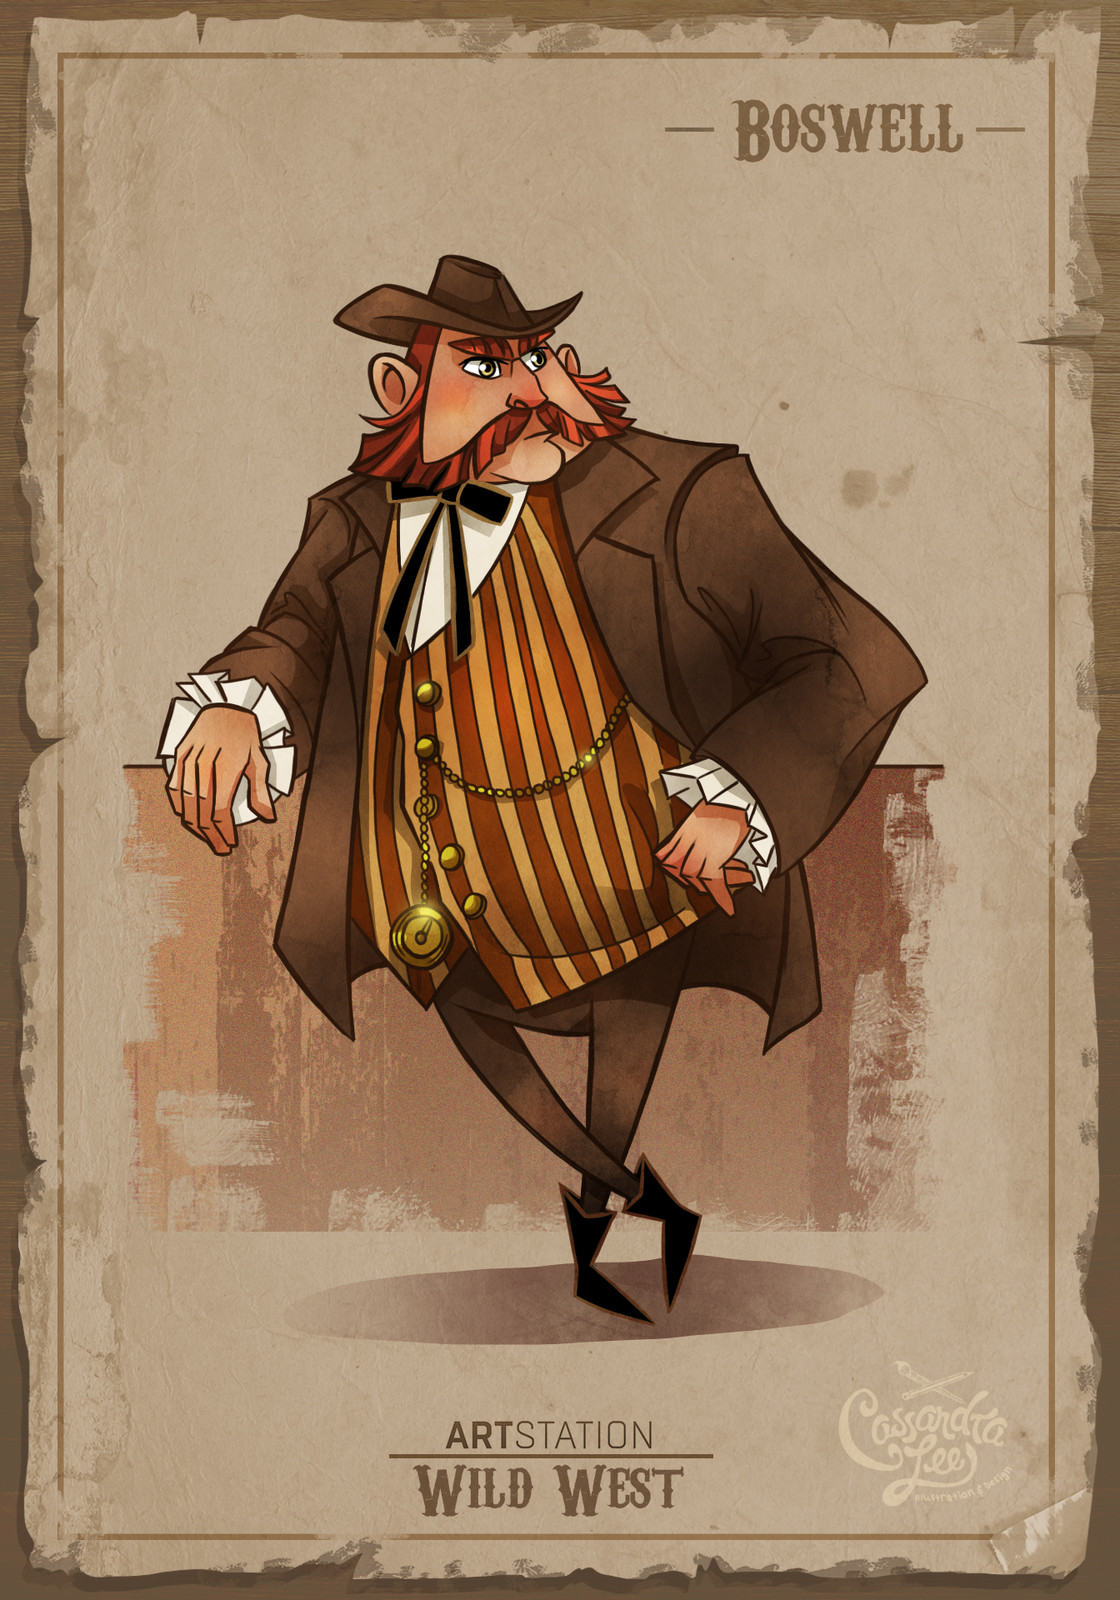 Boswell the saloon owner